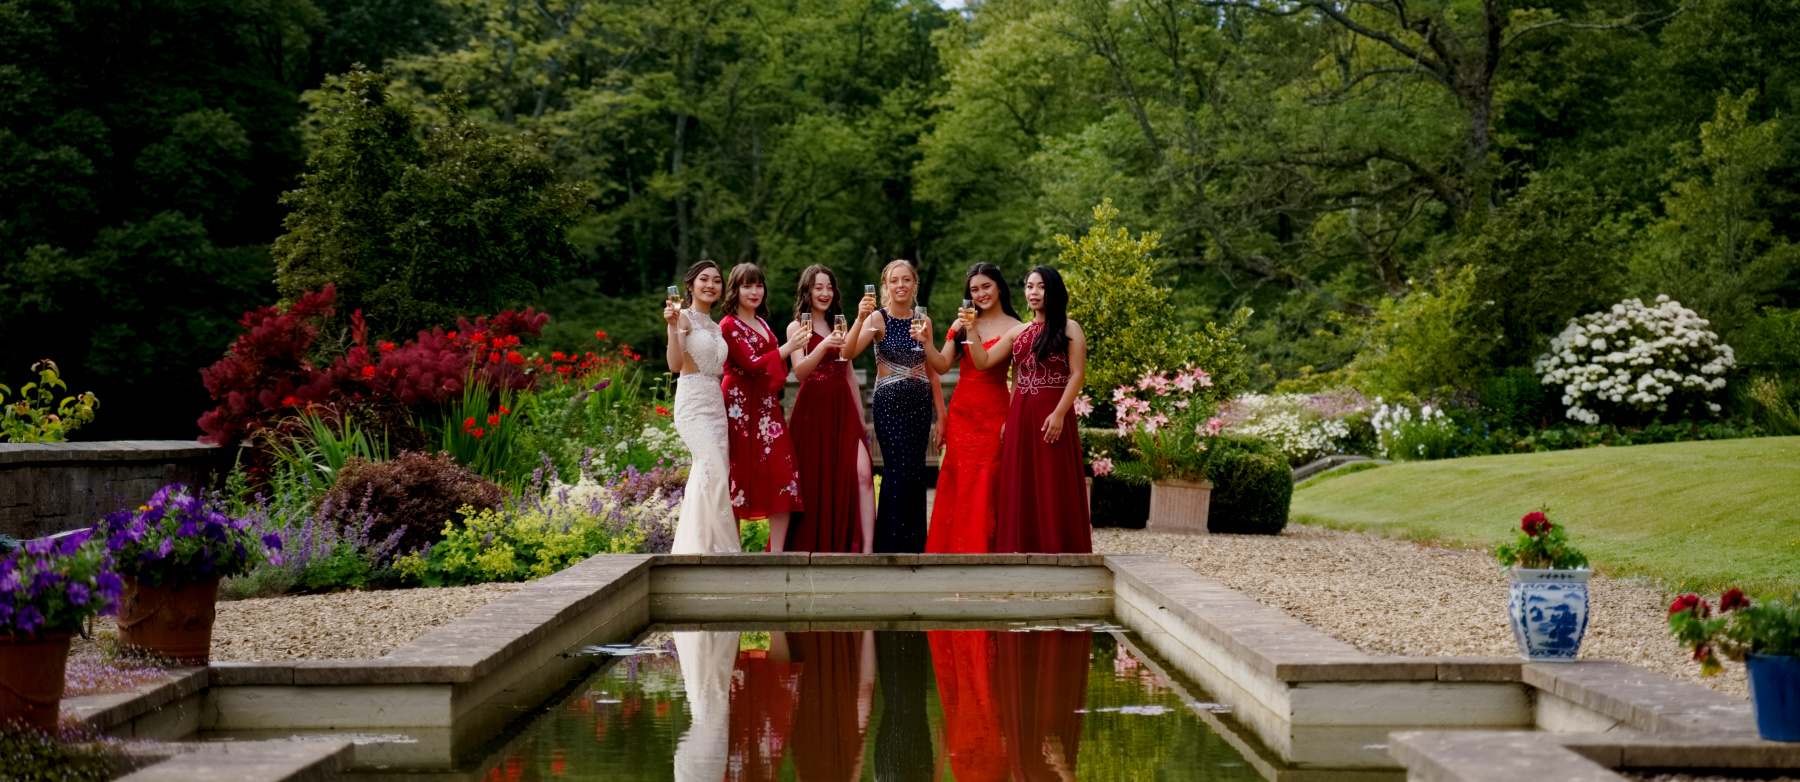 Prom photoshoot at Stradey Castle